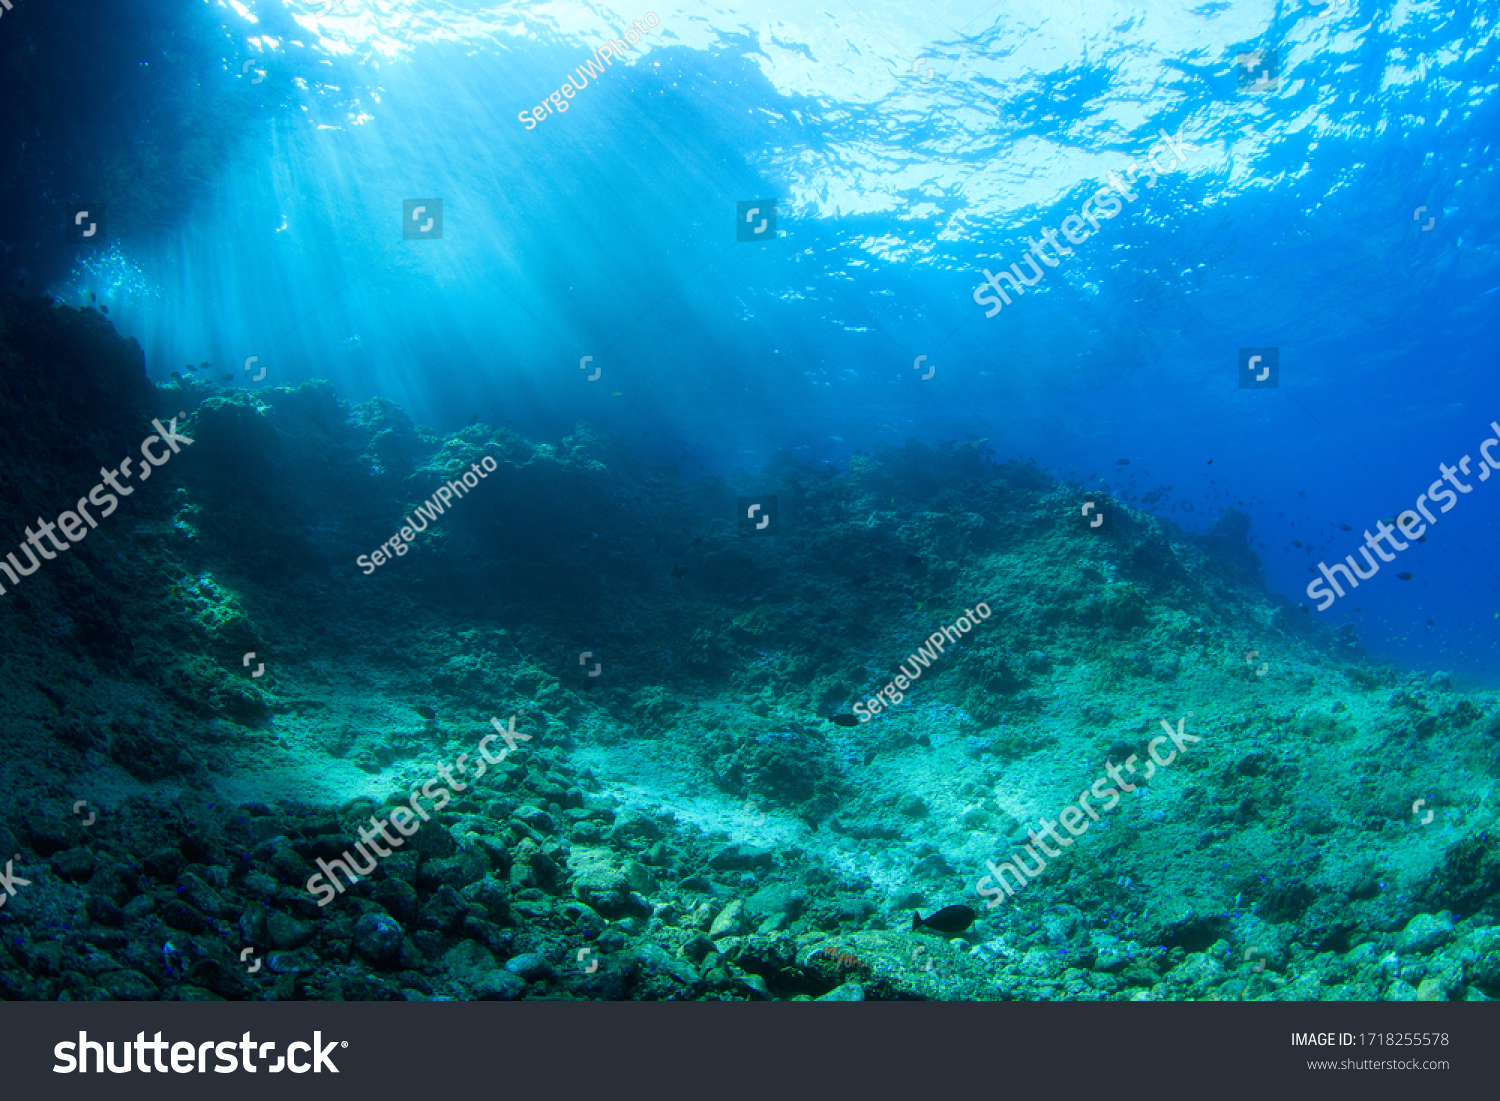 Underwater scenery with rocks and sun rays. Image taken scuba diving in Indonesia #1718255578